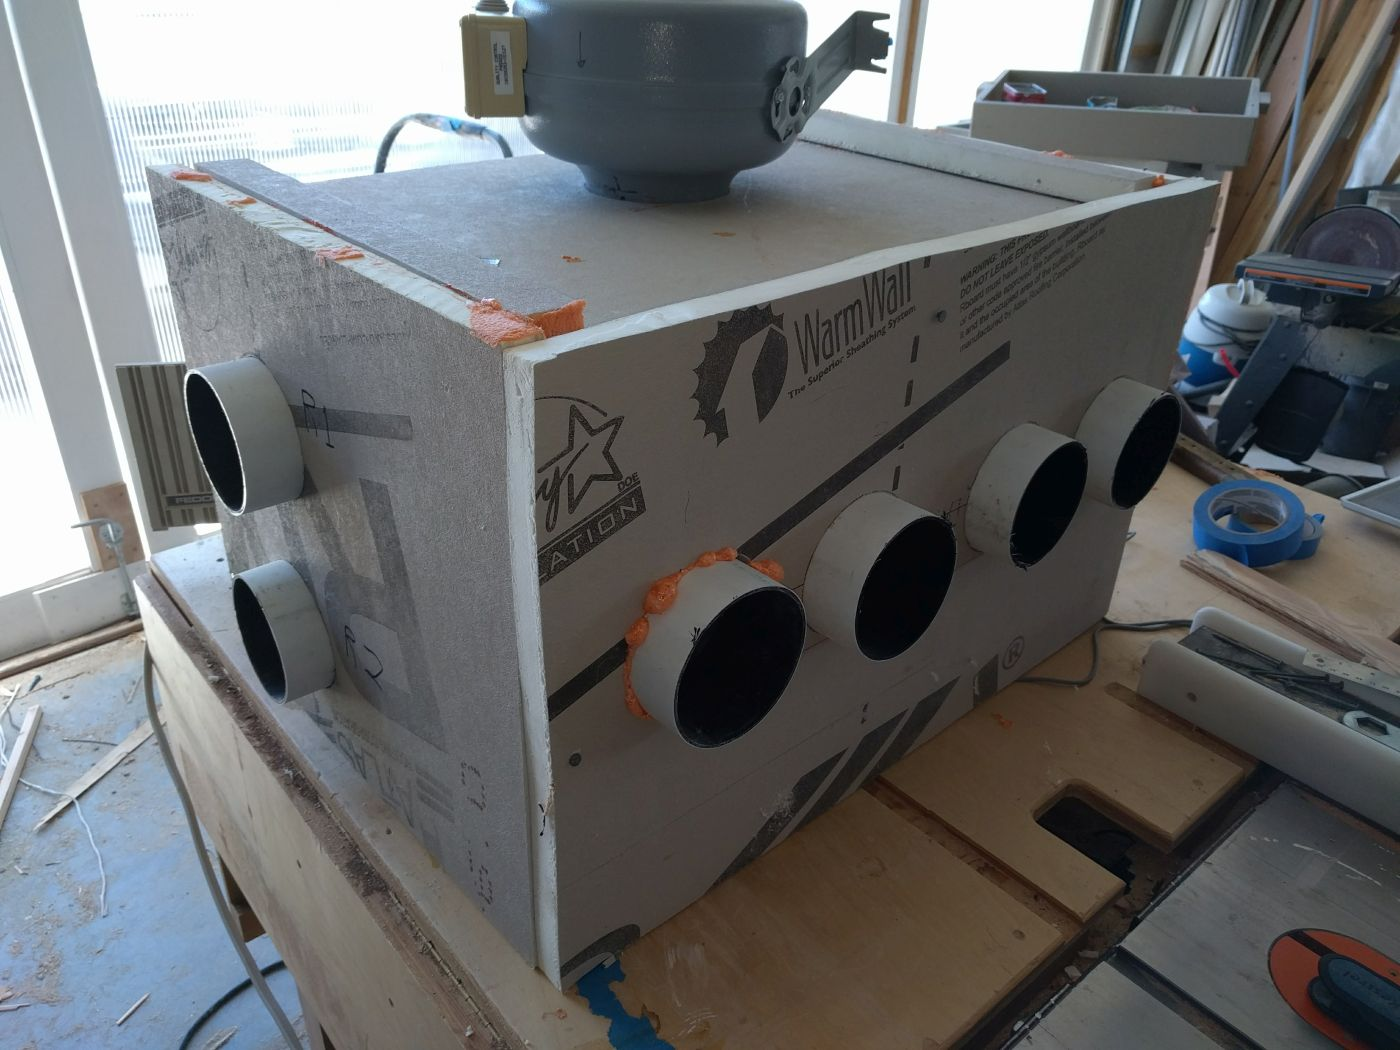 Window Air Conditioner to Cool an RV – Build A Green RV